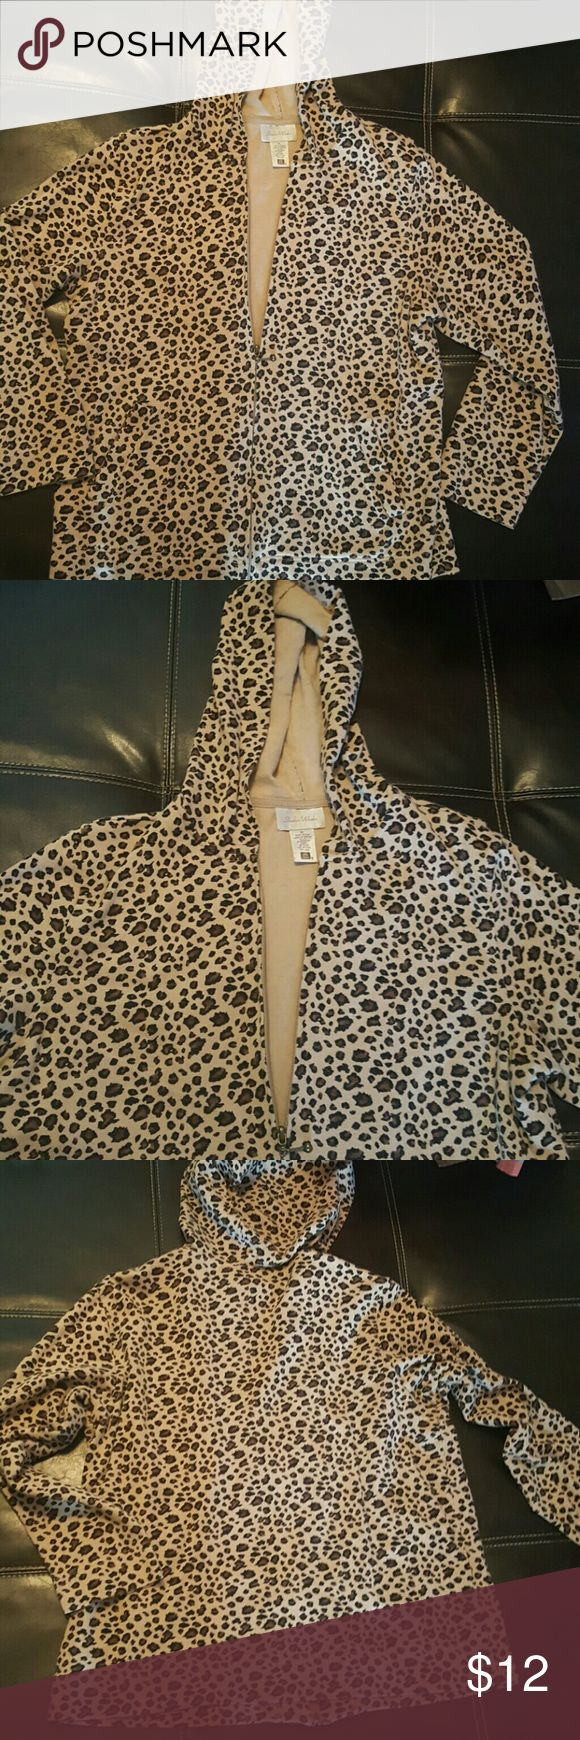 Chetta print Leopard full zip hoodie hooded shirt Great condition full zip sweatshirt, perfect for fall. Tan brown & black Ladies Womens M Medium Top rated Fast shipper Studio Works Tops Sweatshirts & Hoodies